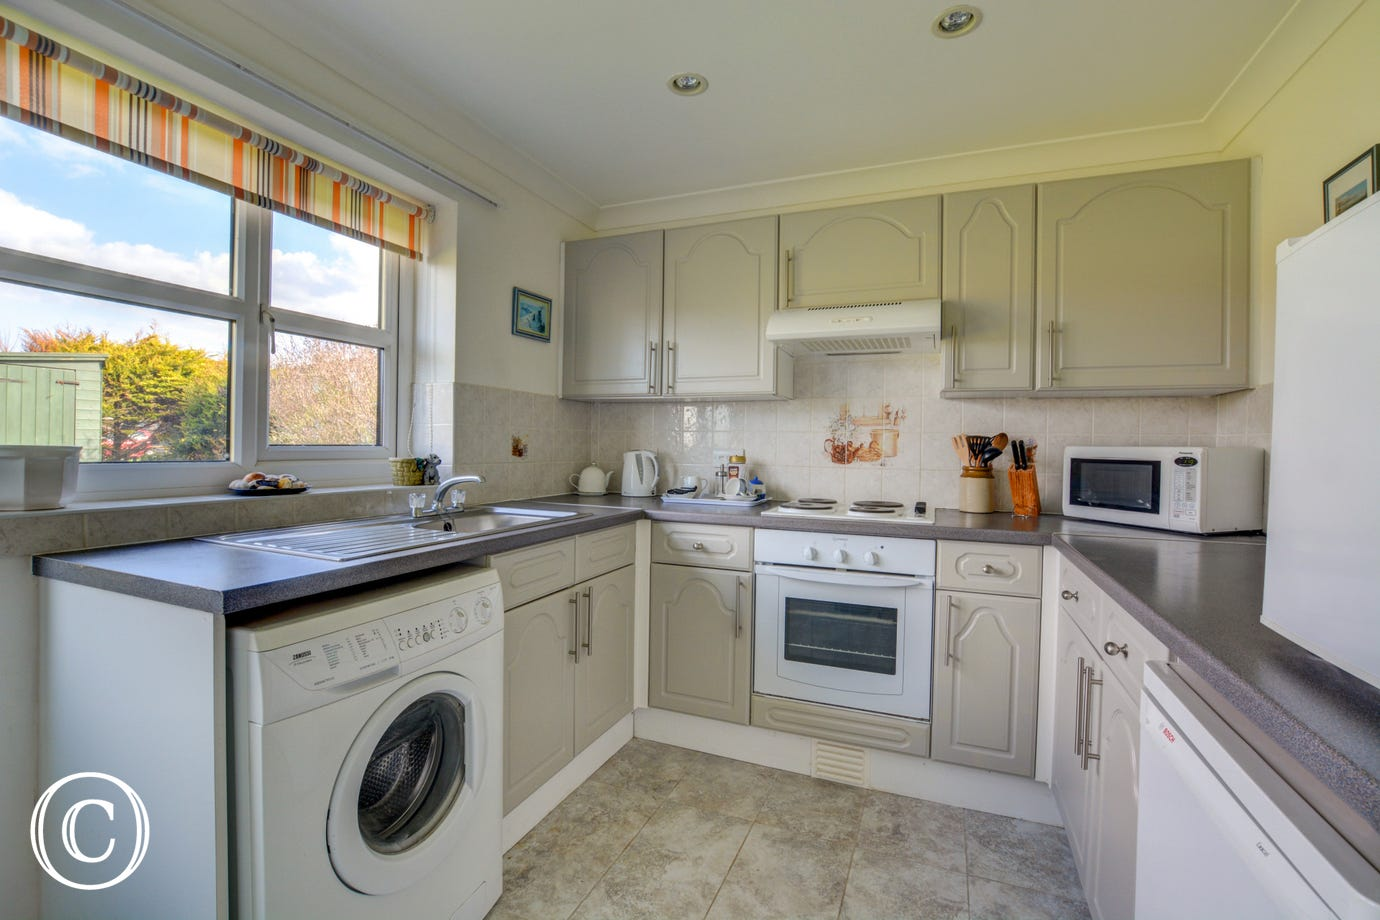 Kitchen with electric oven and hob